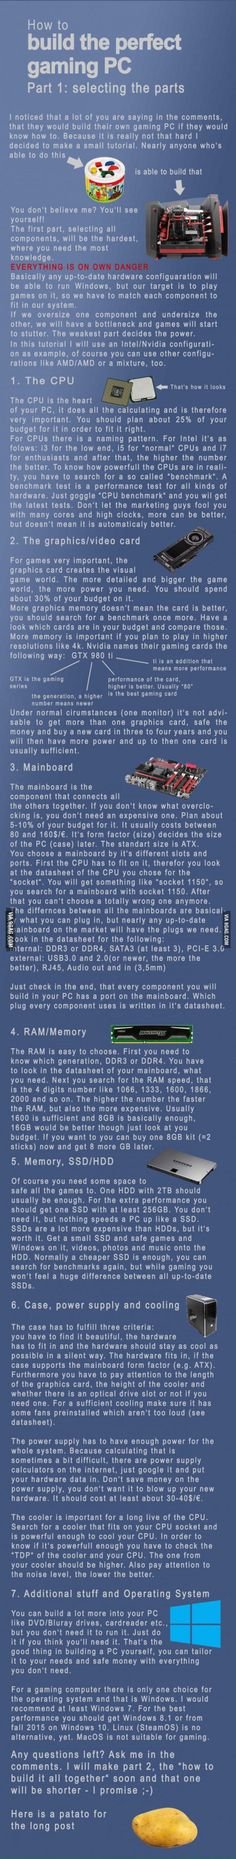 I heard people in here wanted to build their own computer so here goes 9gaggers